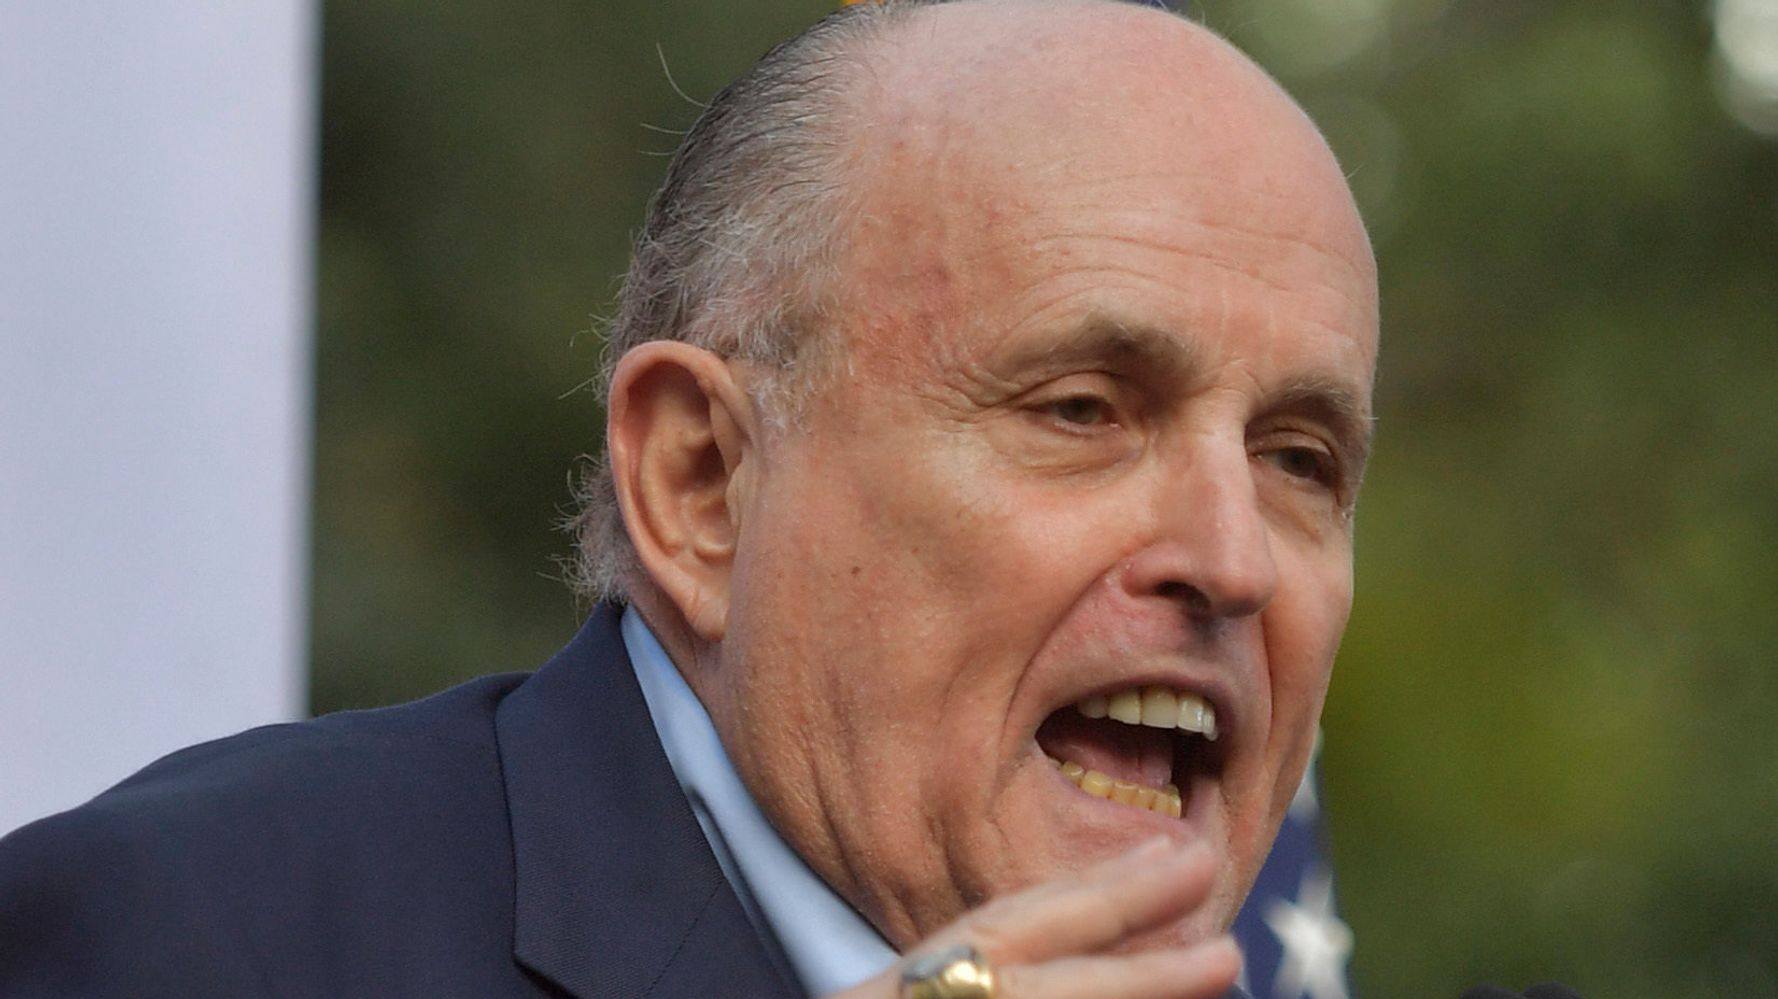 Watchdog Group Calls For Criminal Probe Into Rudy Giuliani's Ukraine Role